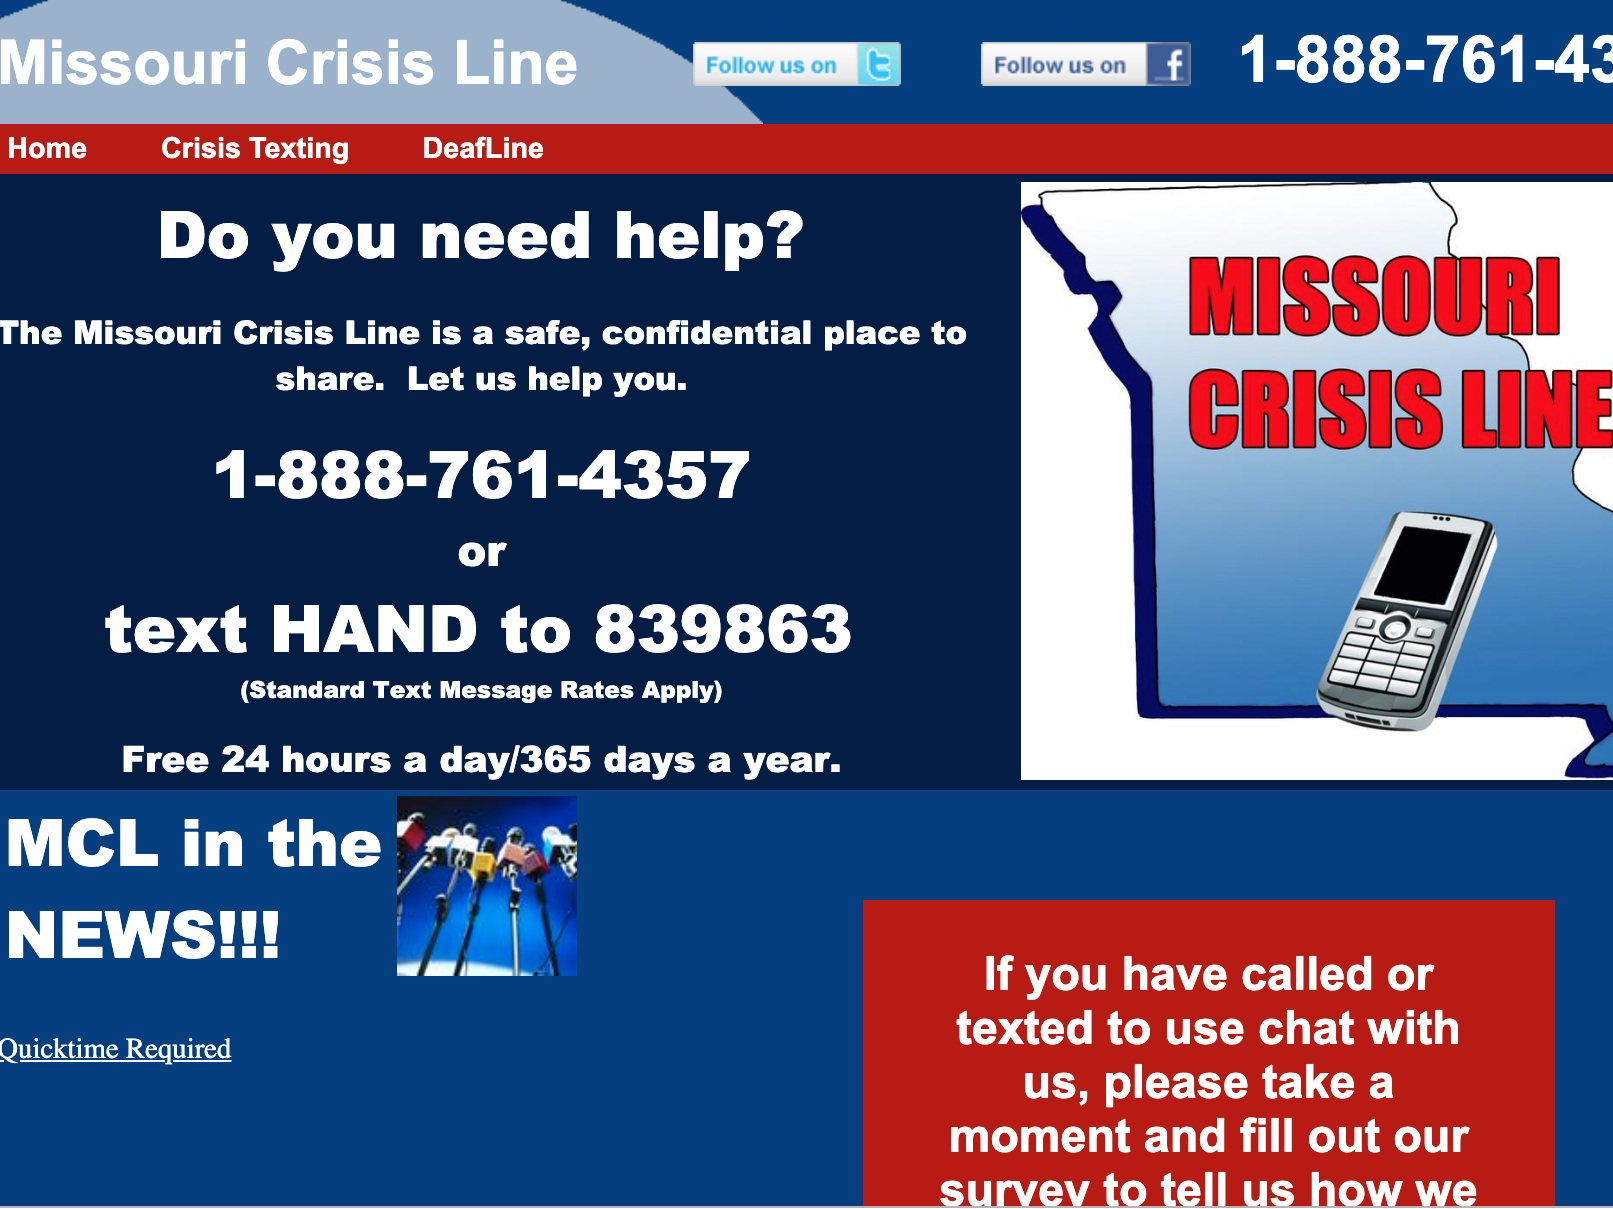 missouri crisis line - Missouri's Crisis Line is available 24 hours a day, 365 days a year with phone and text options.